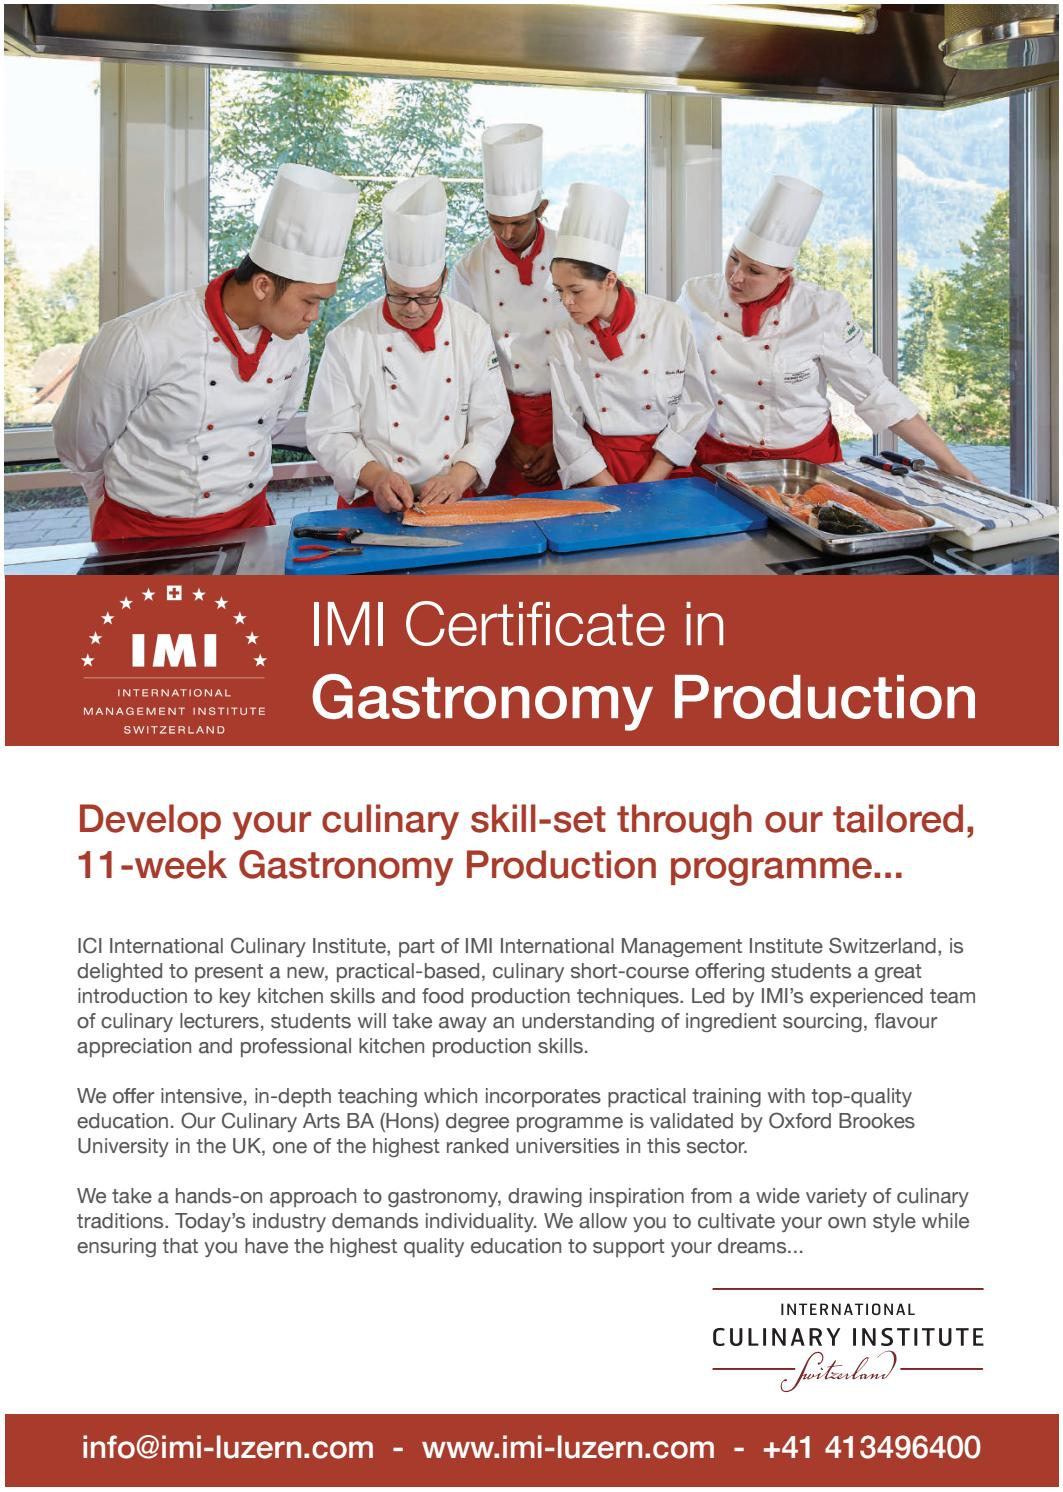 Imis Certificate In Gastronomy Production By Imi Luzern Issuu